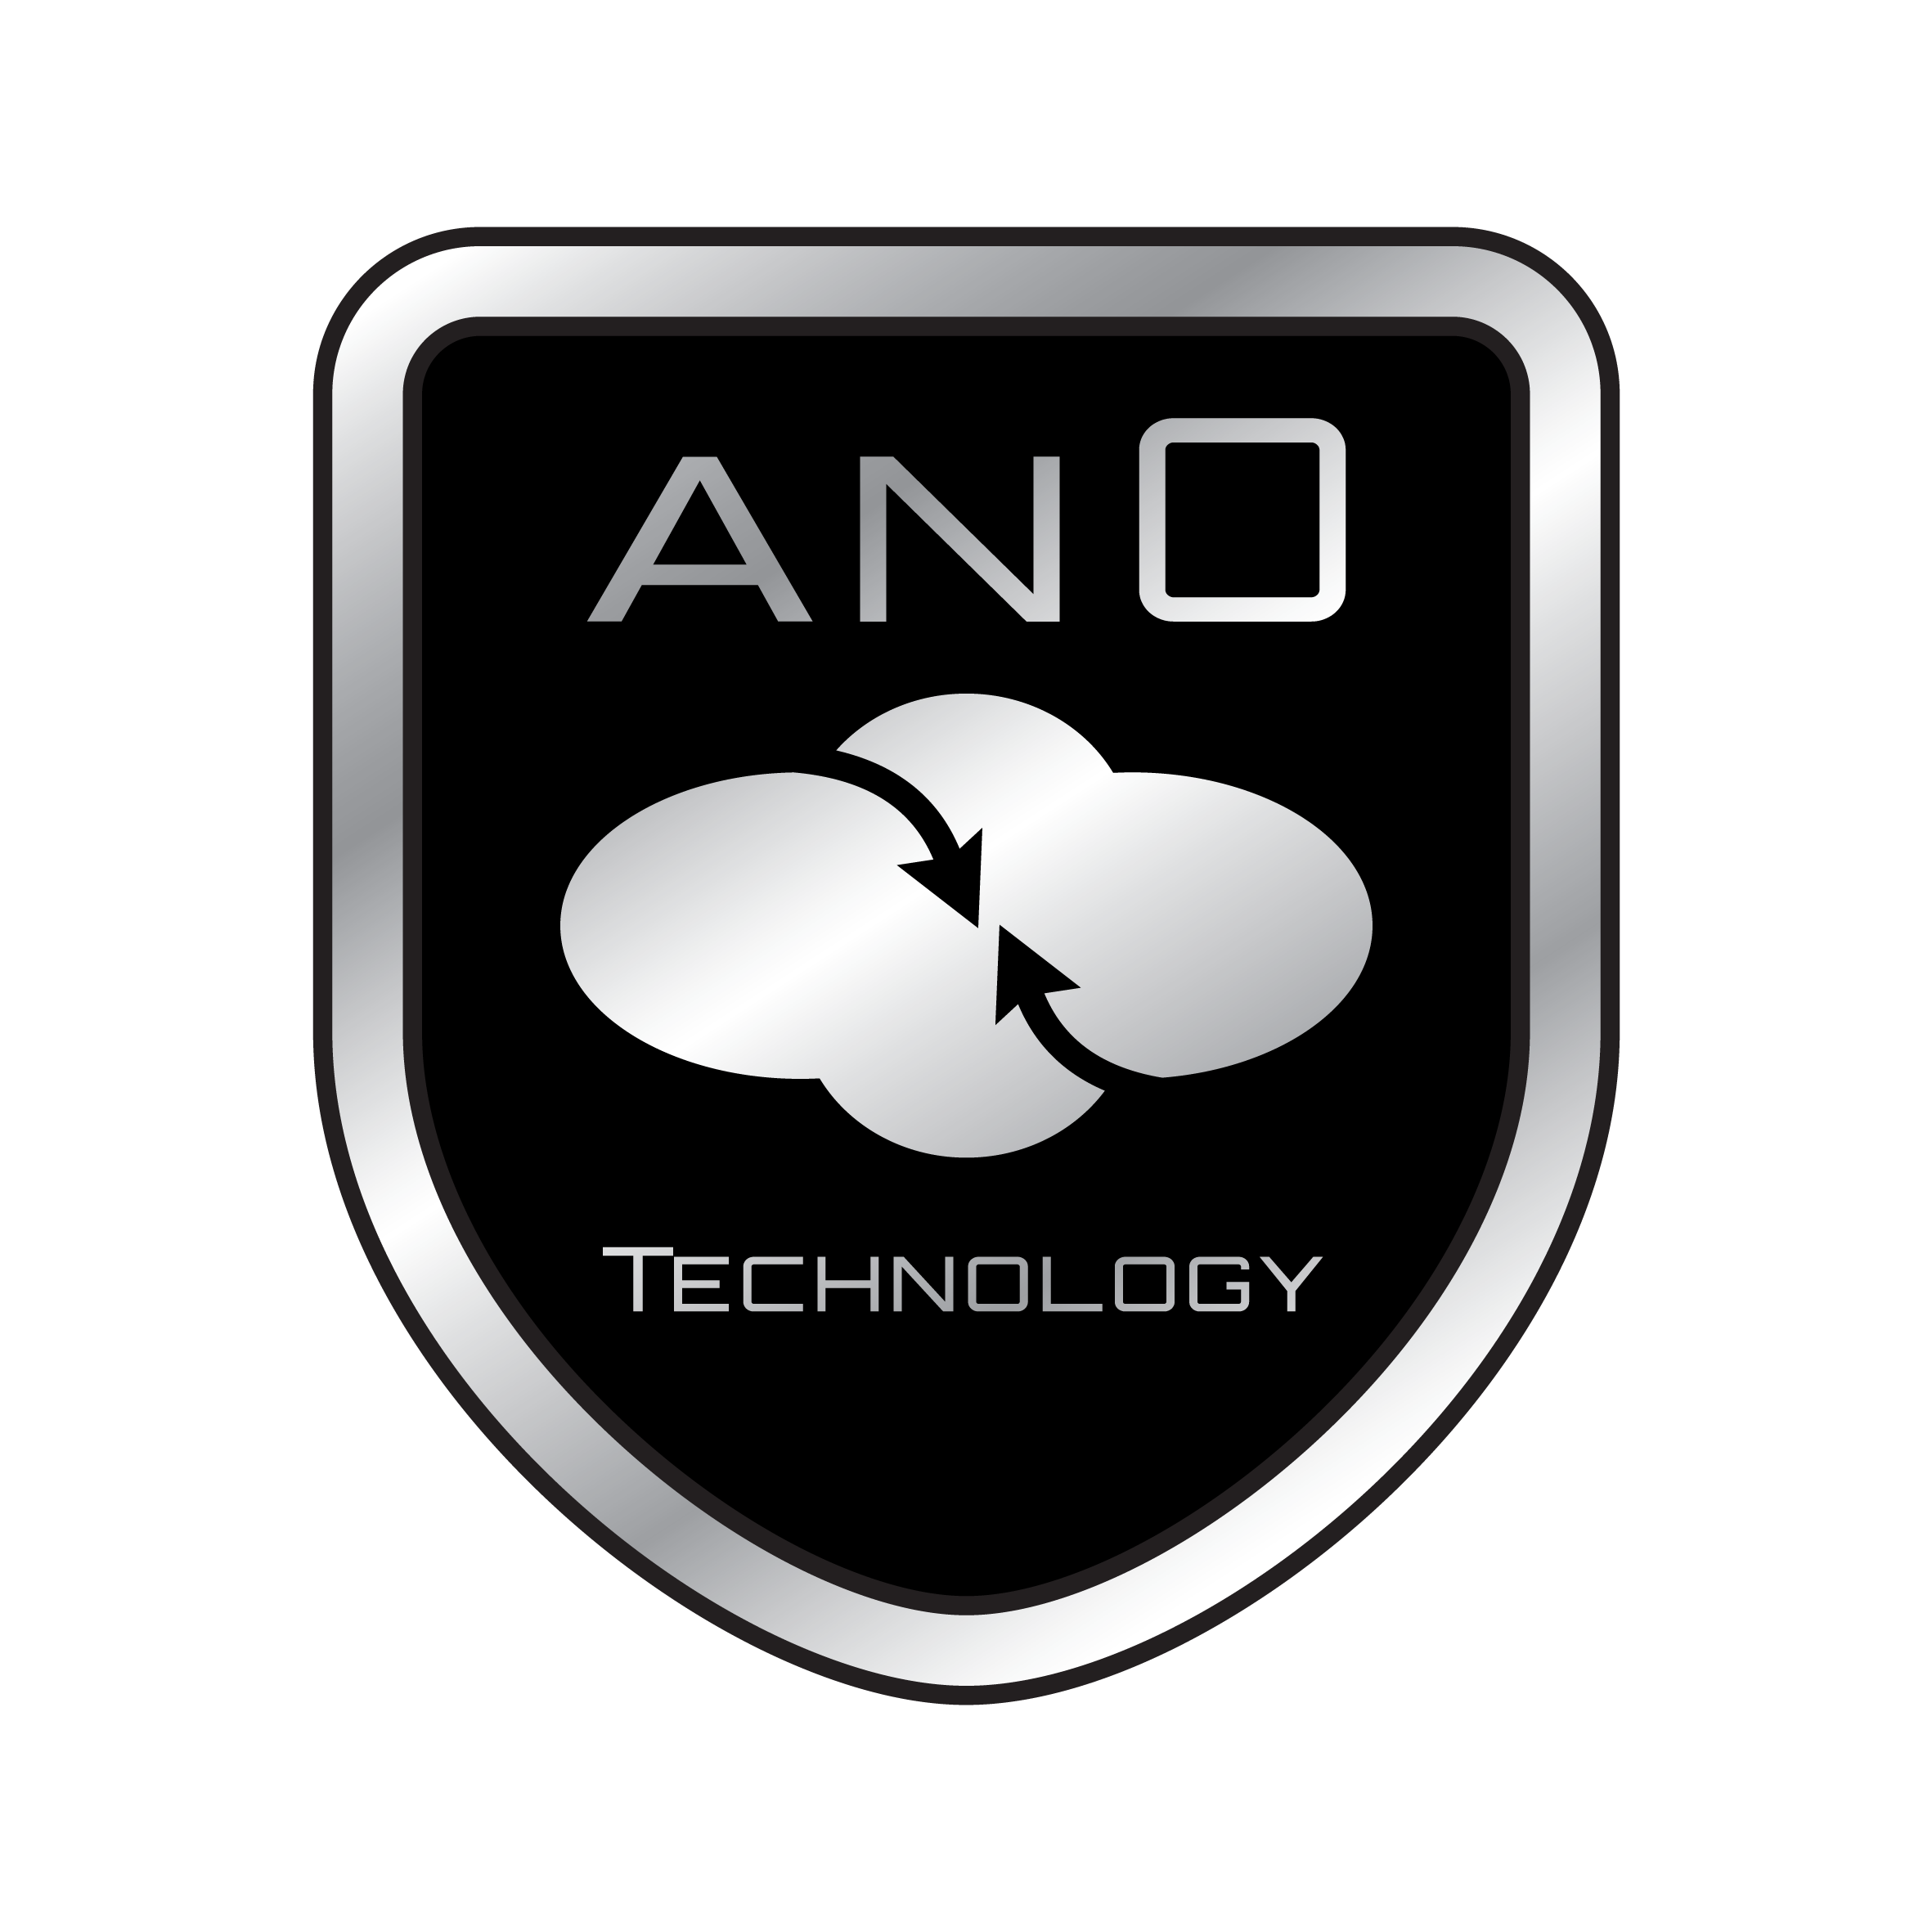 an0 Technology Ltd